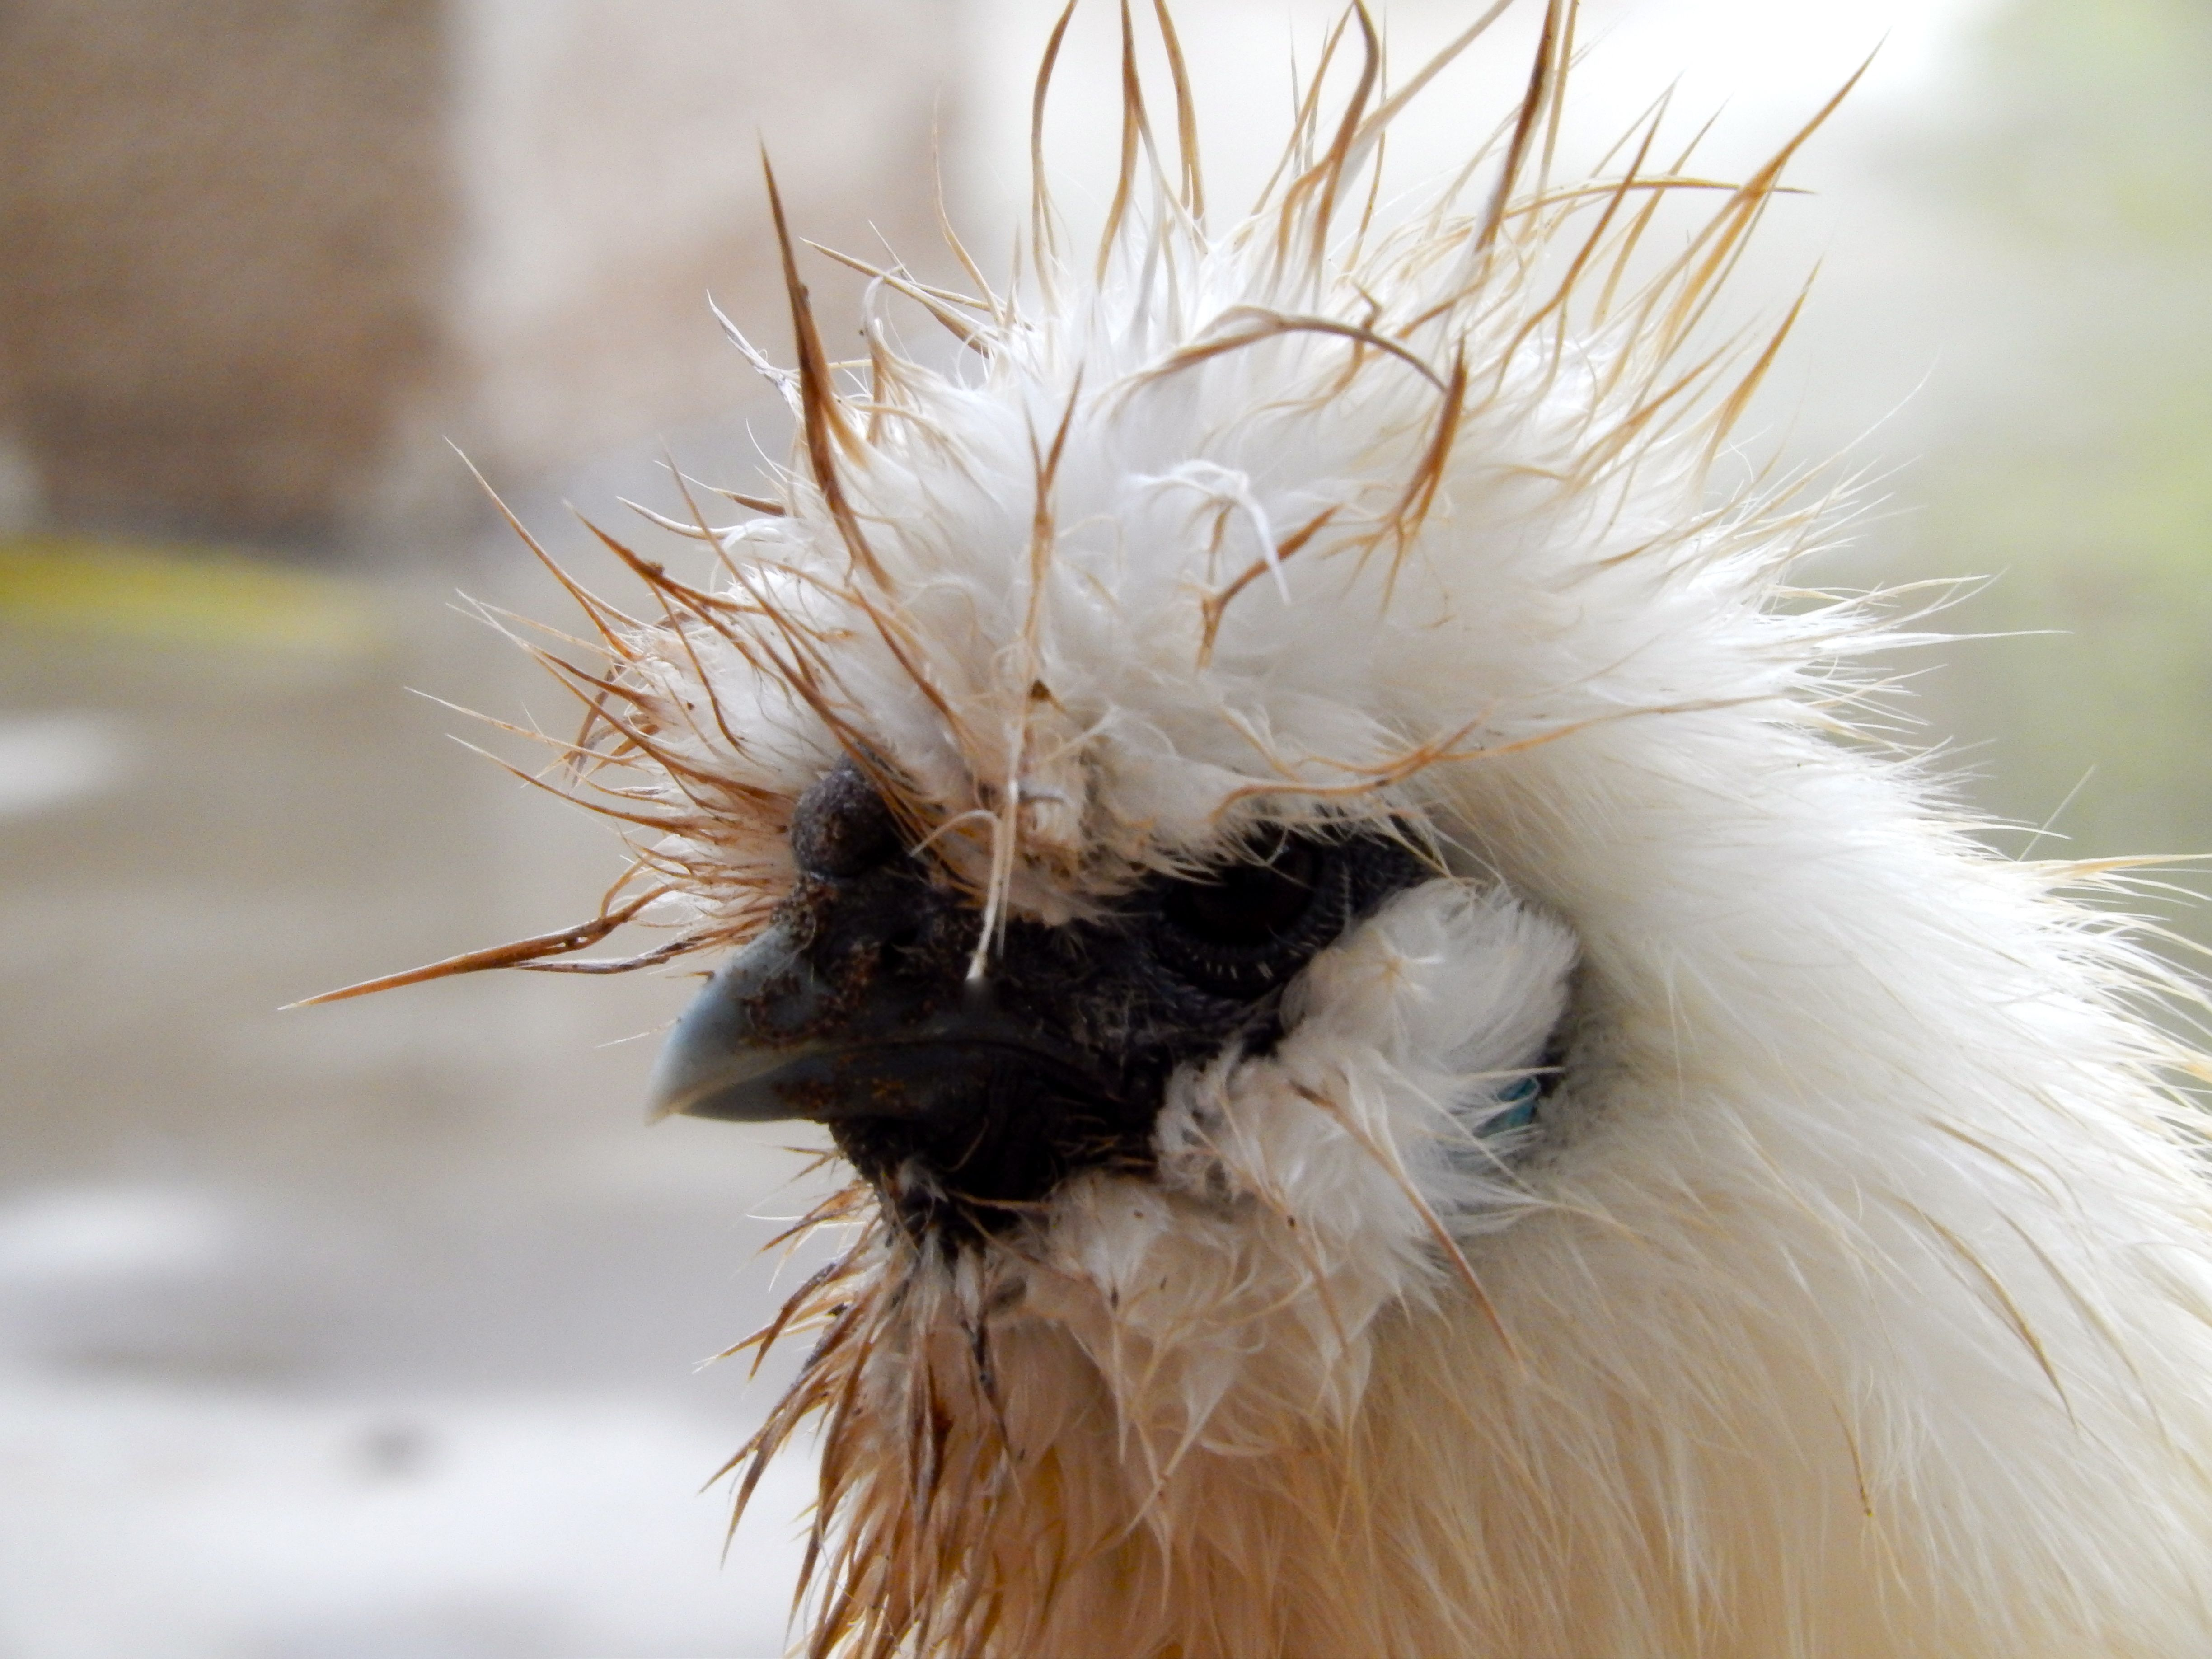 Mohawk Chicken Mohawks Chic Hairstyles And Hens